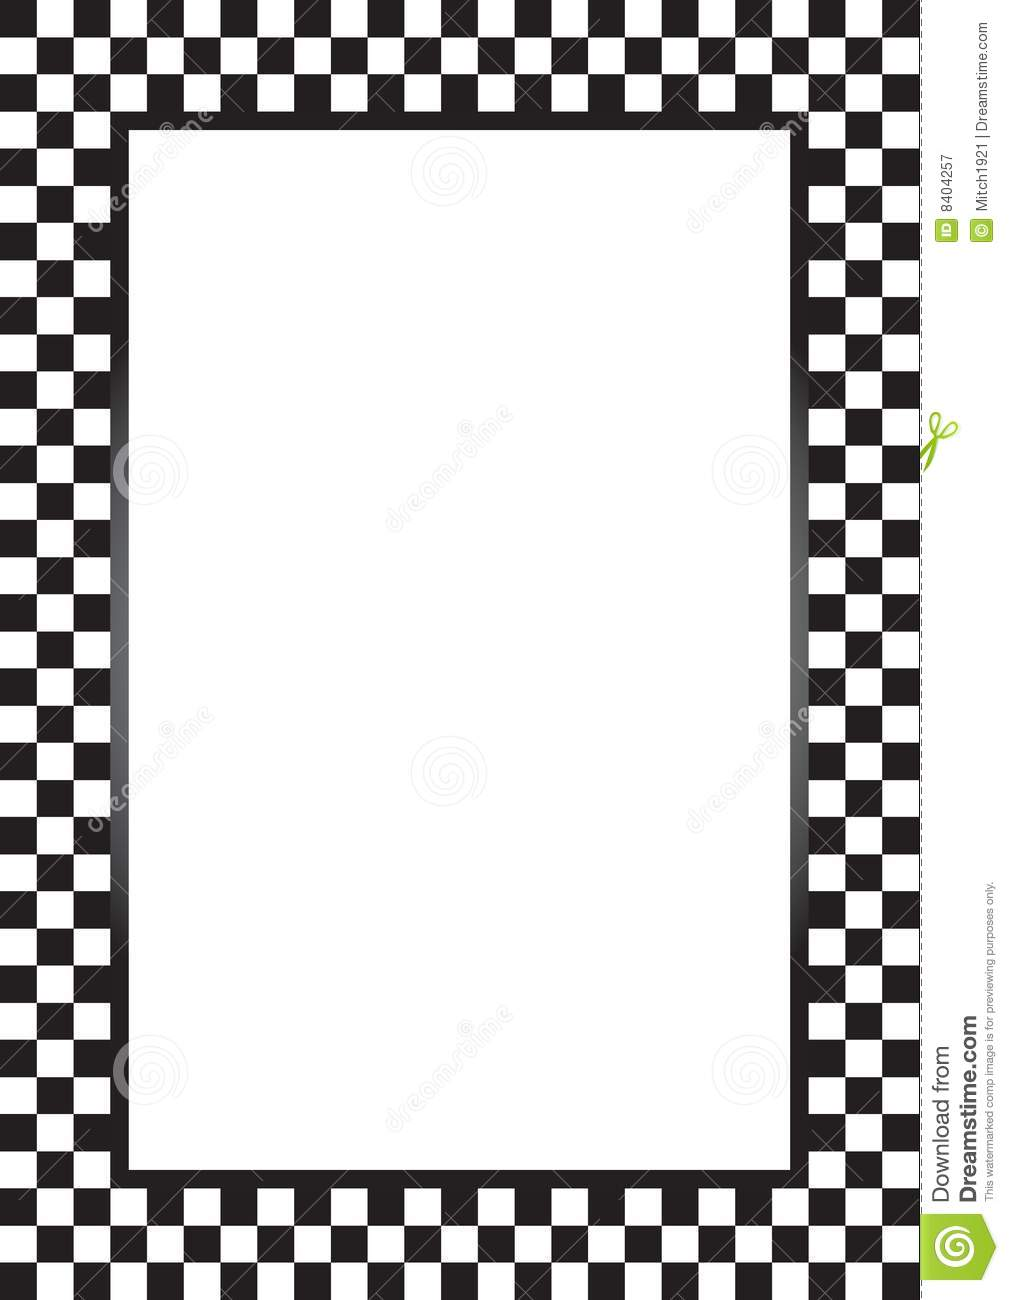 Racing Border Royalty Free Stock Photography - Image: 8404257